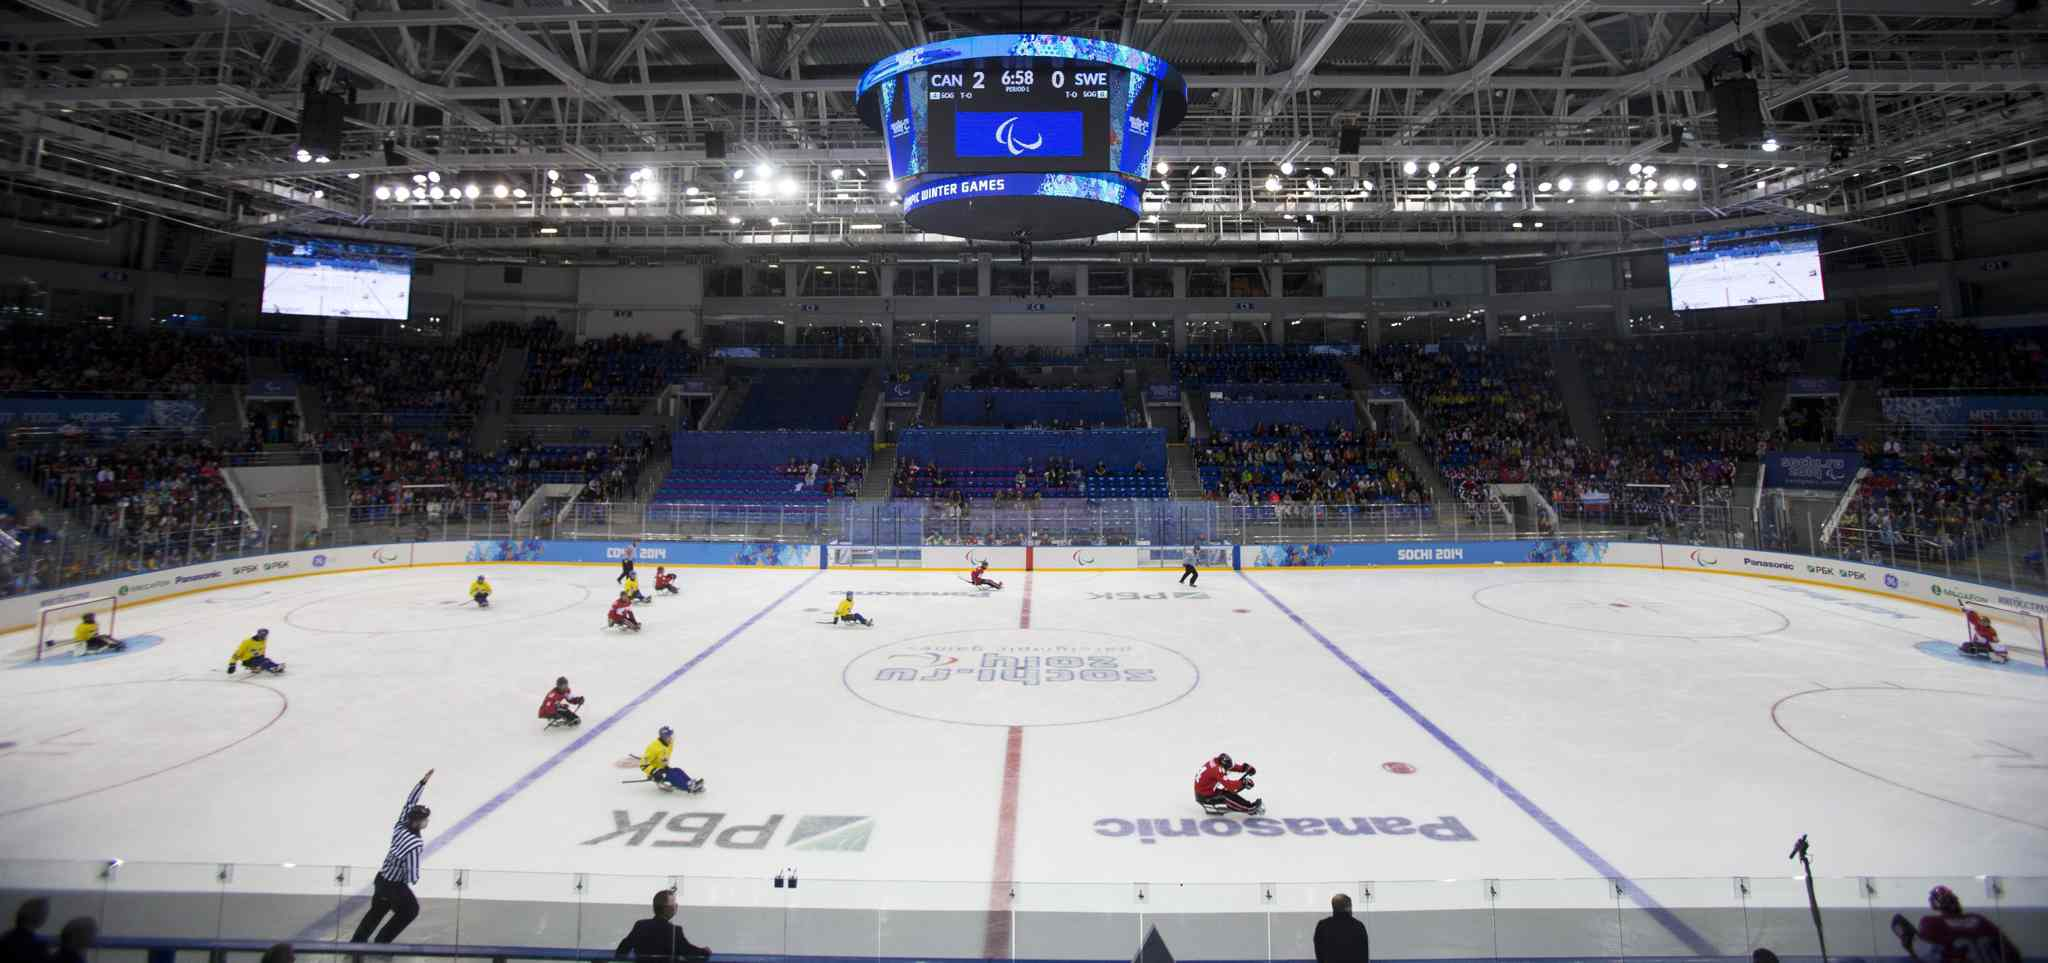 Teams of Canada and Sweden in action during the ice sledge hockey match at the Shayba Arena at the 2014 Winter Paralympics in Sochi, Russia, Saturday, March 8, 2014. Canada went on to win the match 10-1.